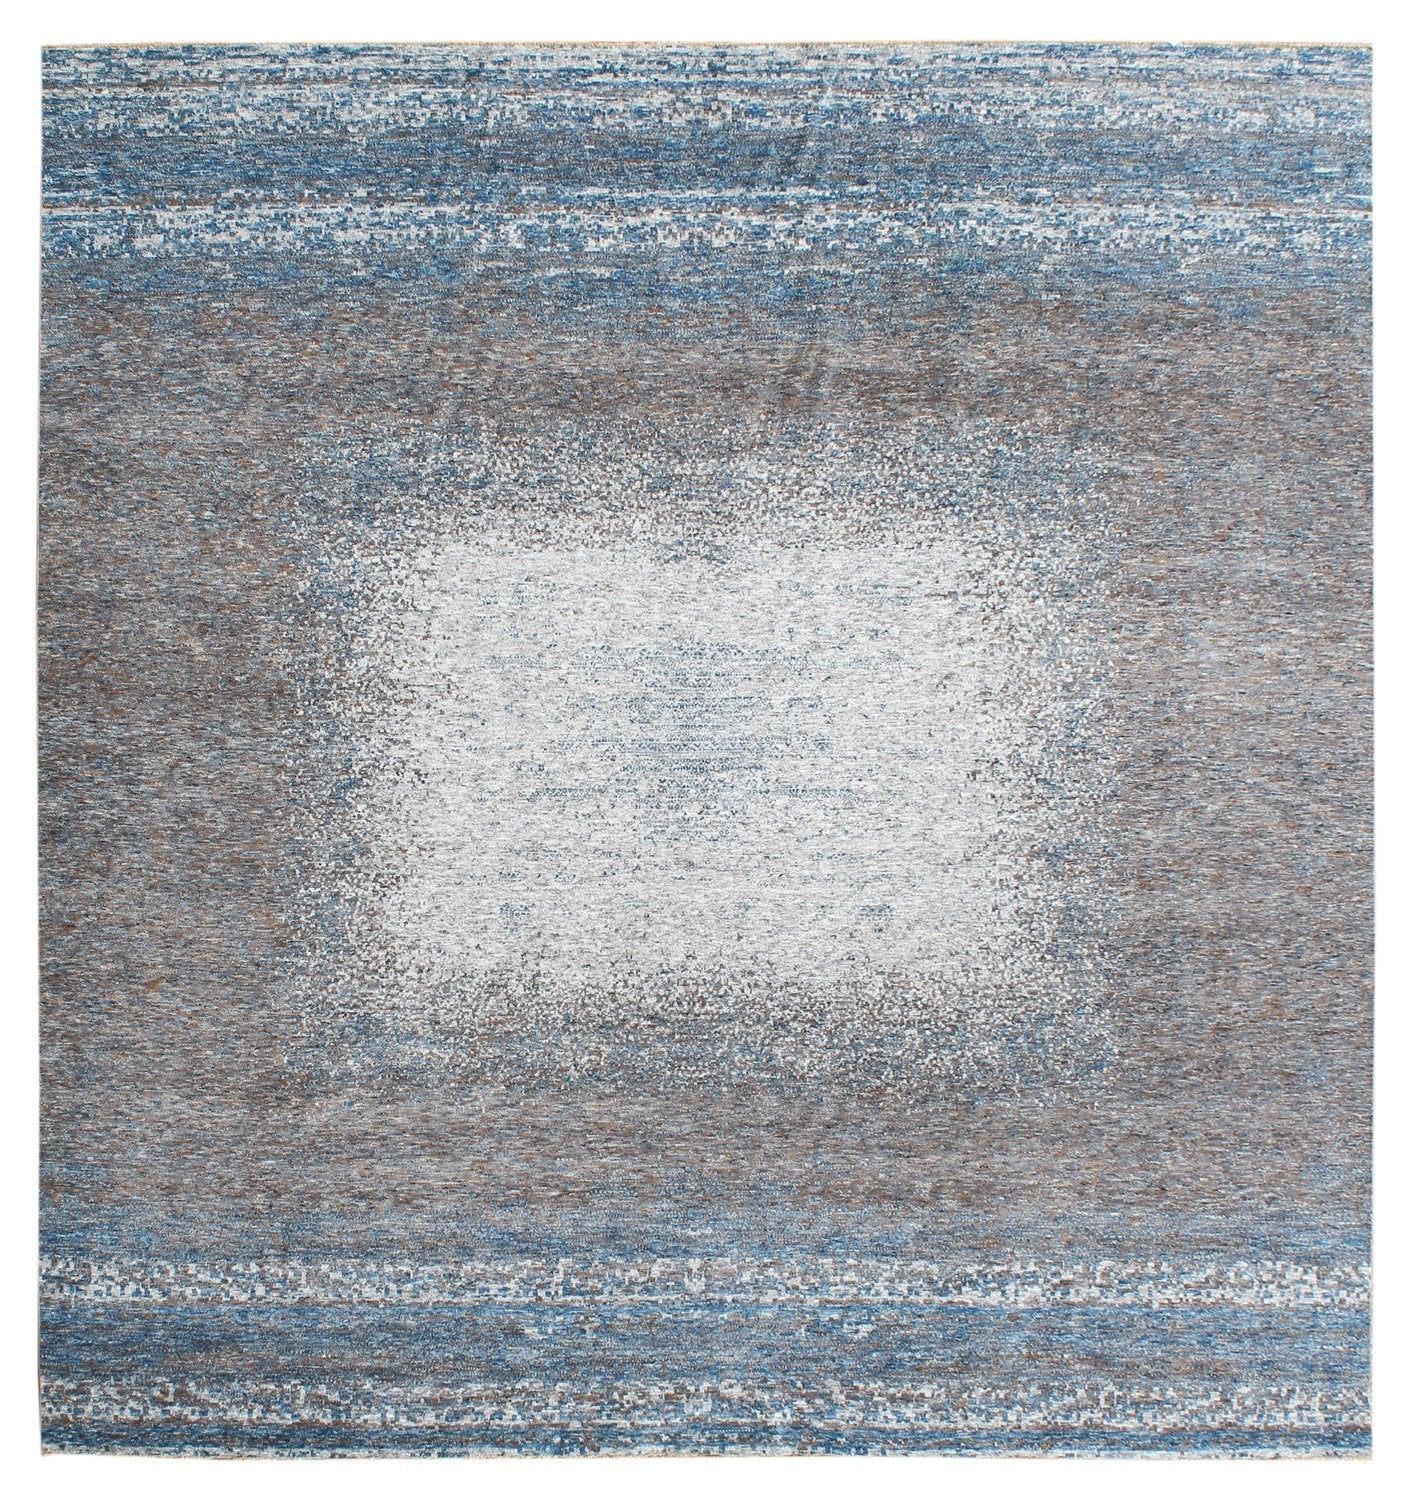 Sahara 2 Handwoven Contemporary Rug